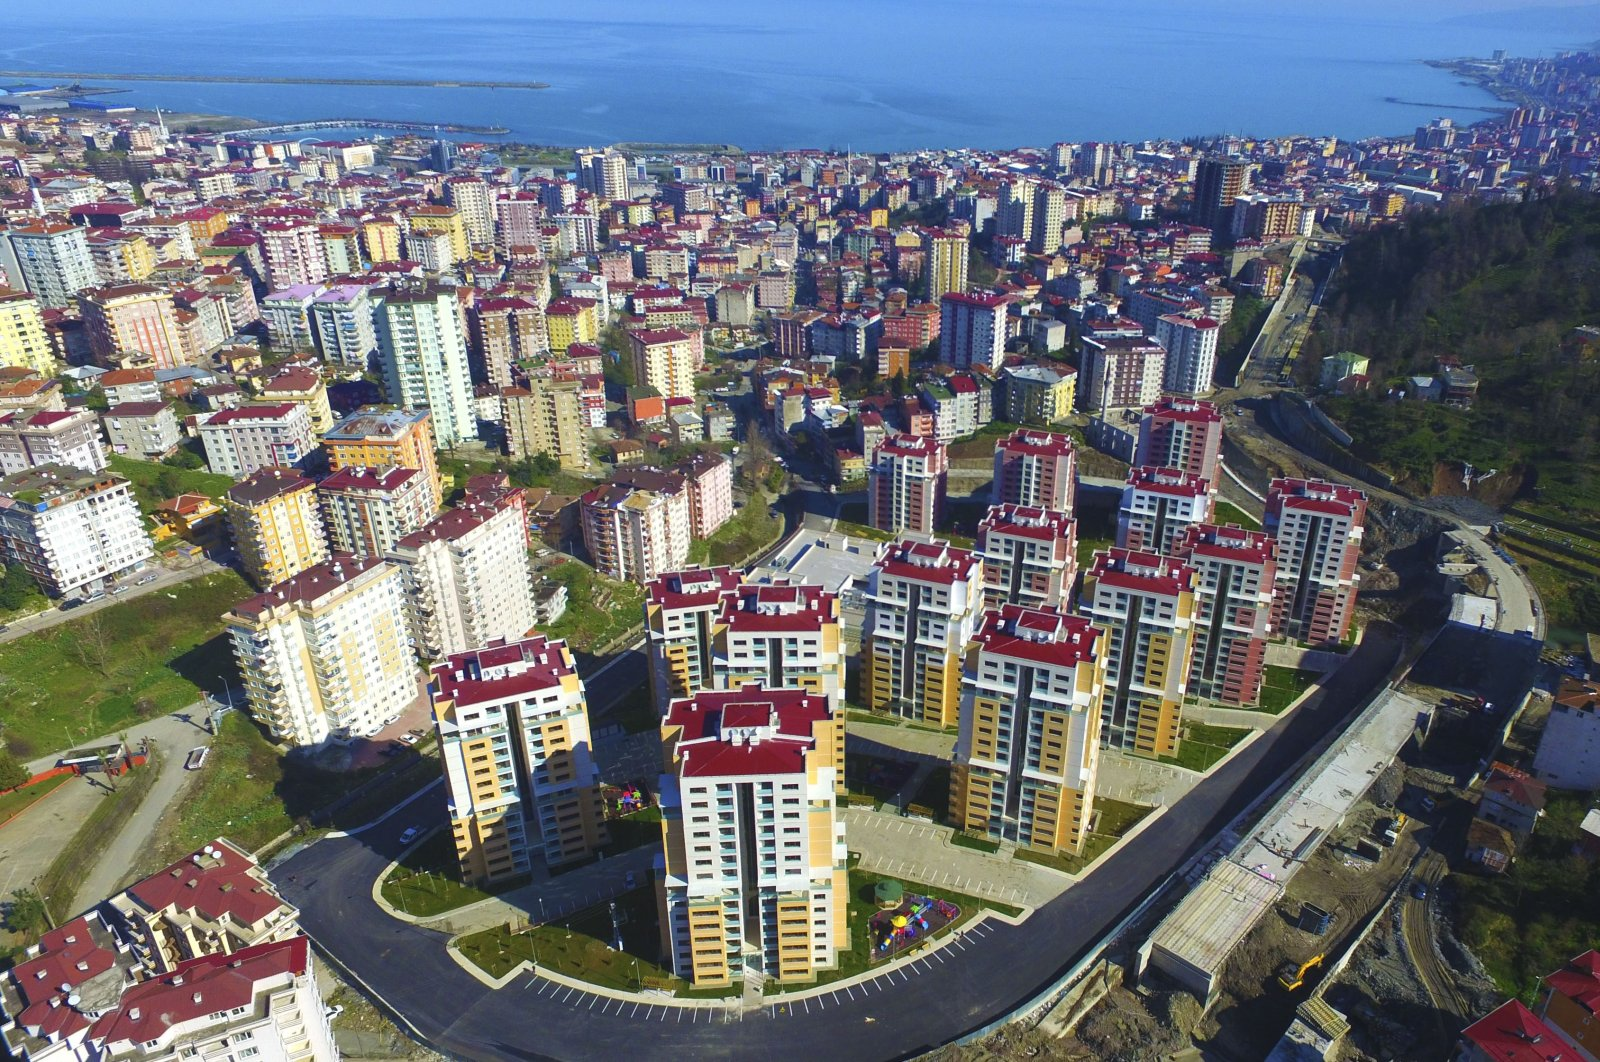 A new housing project is seen in northeastern Rize province, Turkey, Oct. 3, 2018. (IHA Photo)